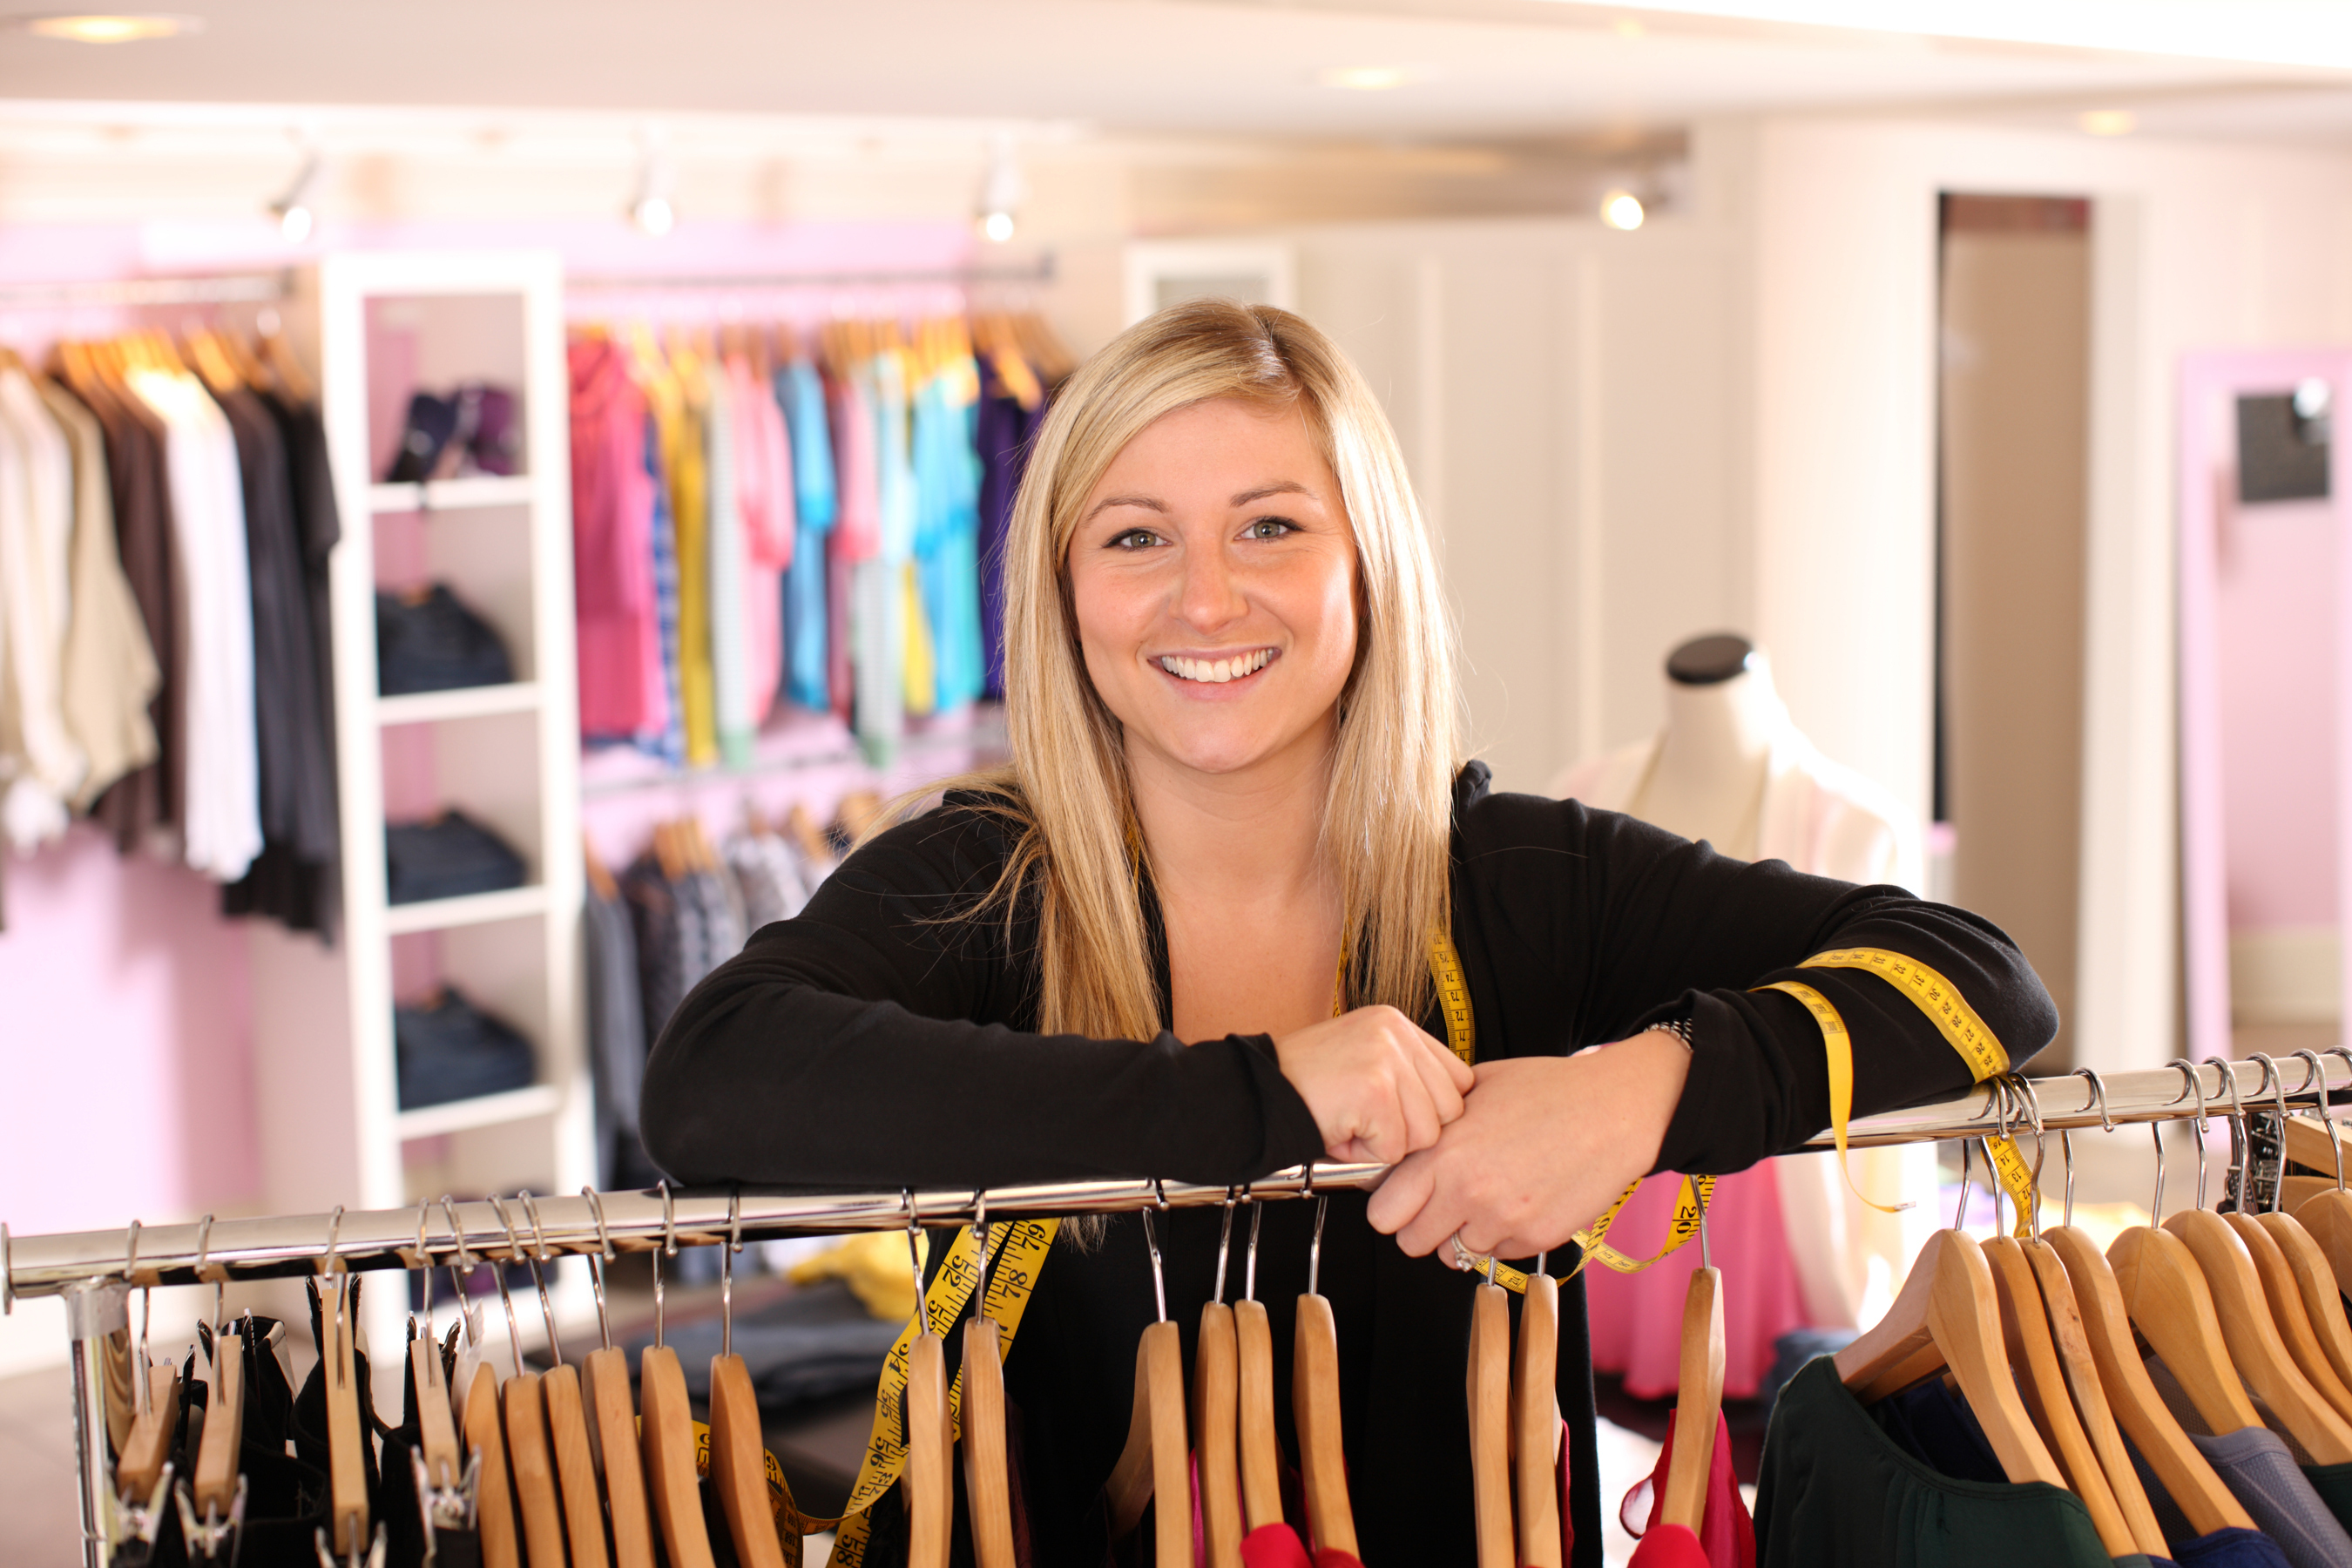 retail space for women business owners